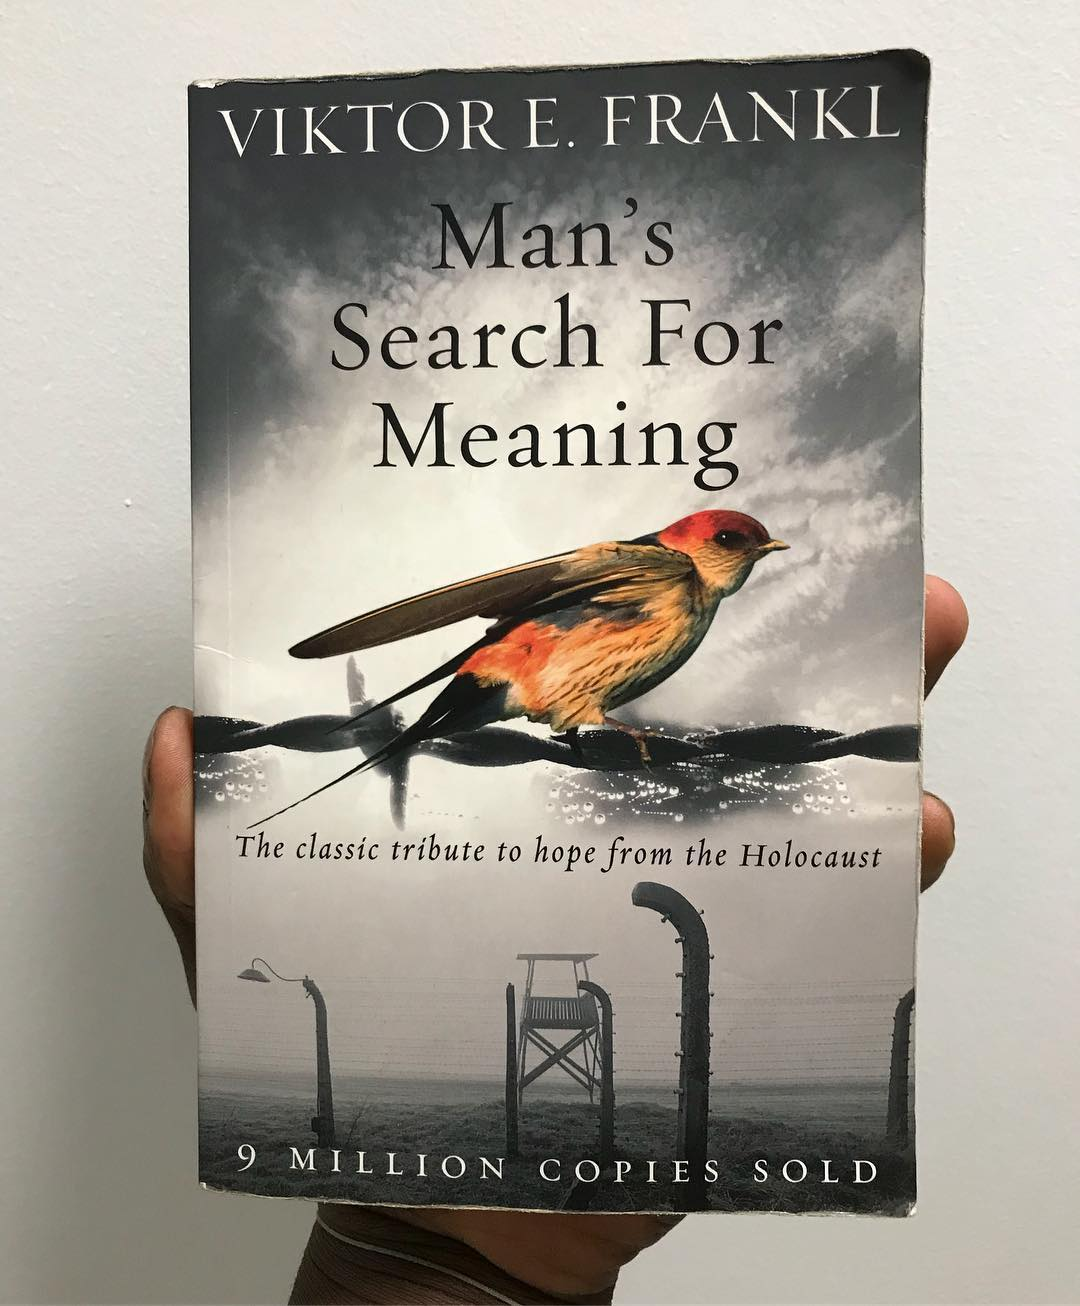 Man's Search For Meaning by Viktor E. Frankl — Clintonslibrary